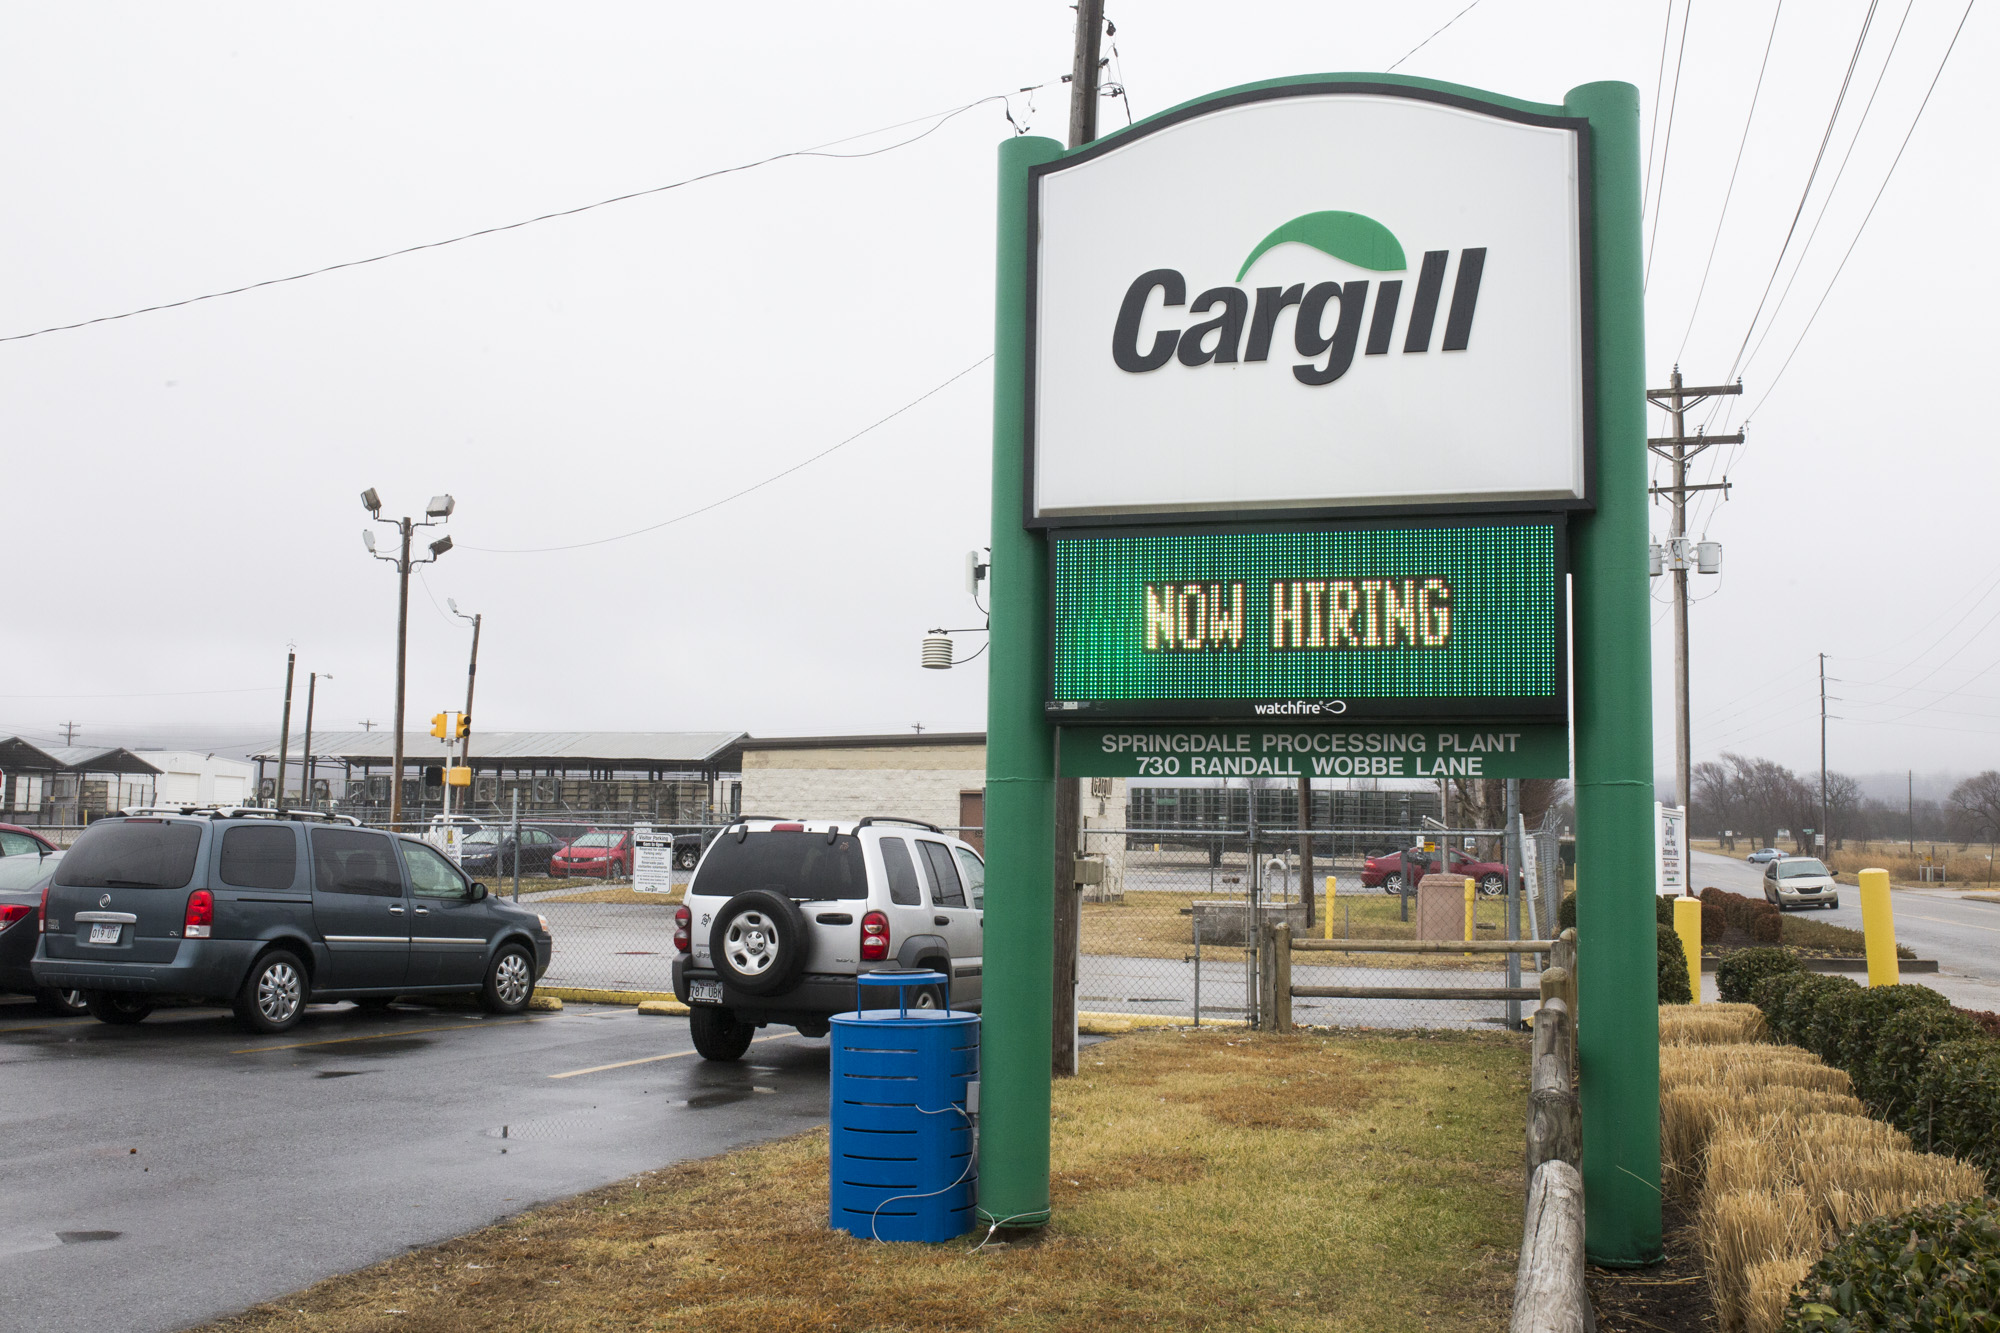 Cargill plant in Springdale, February 14, 2018.